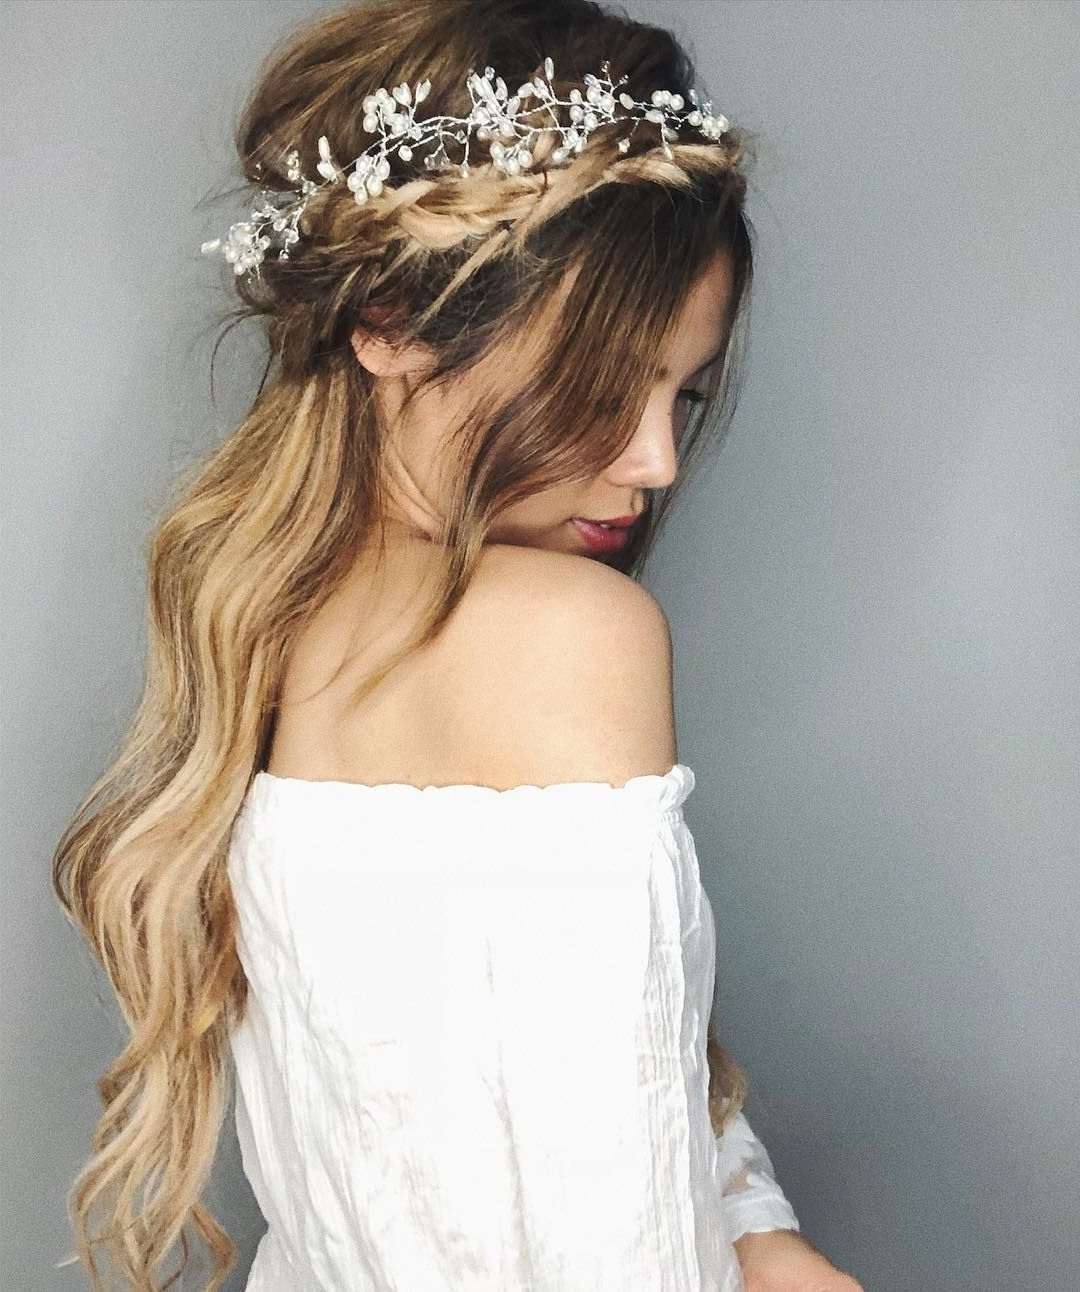 87 Fabulous Wedding Hairstyles For Every Wedding Dress Neckline Intended For Most Current Relaxed Wedding Hairstyles (Gallery 4 of 15)